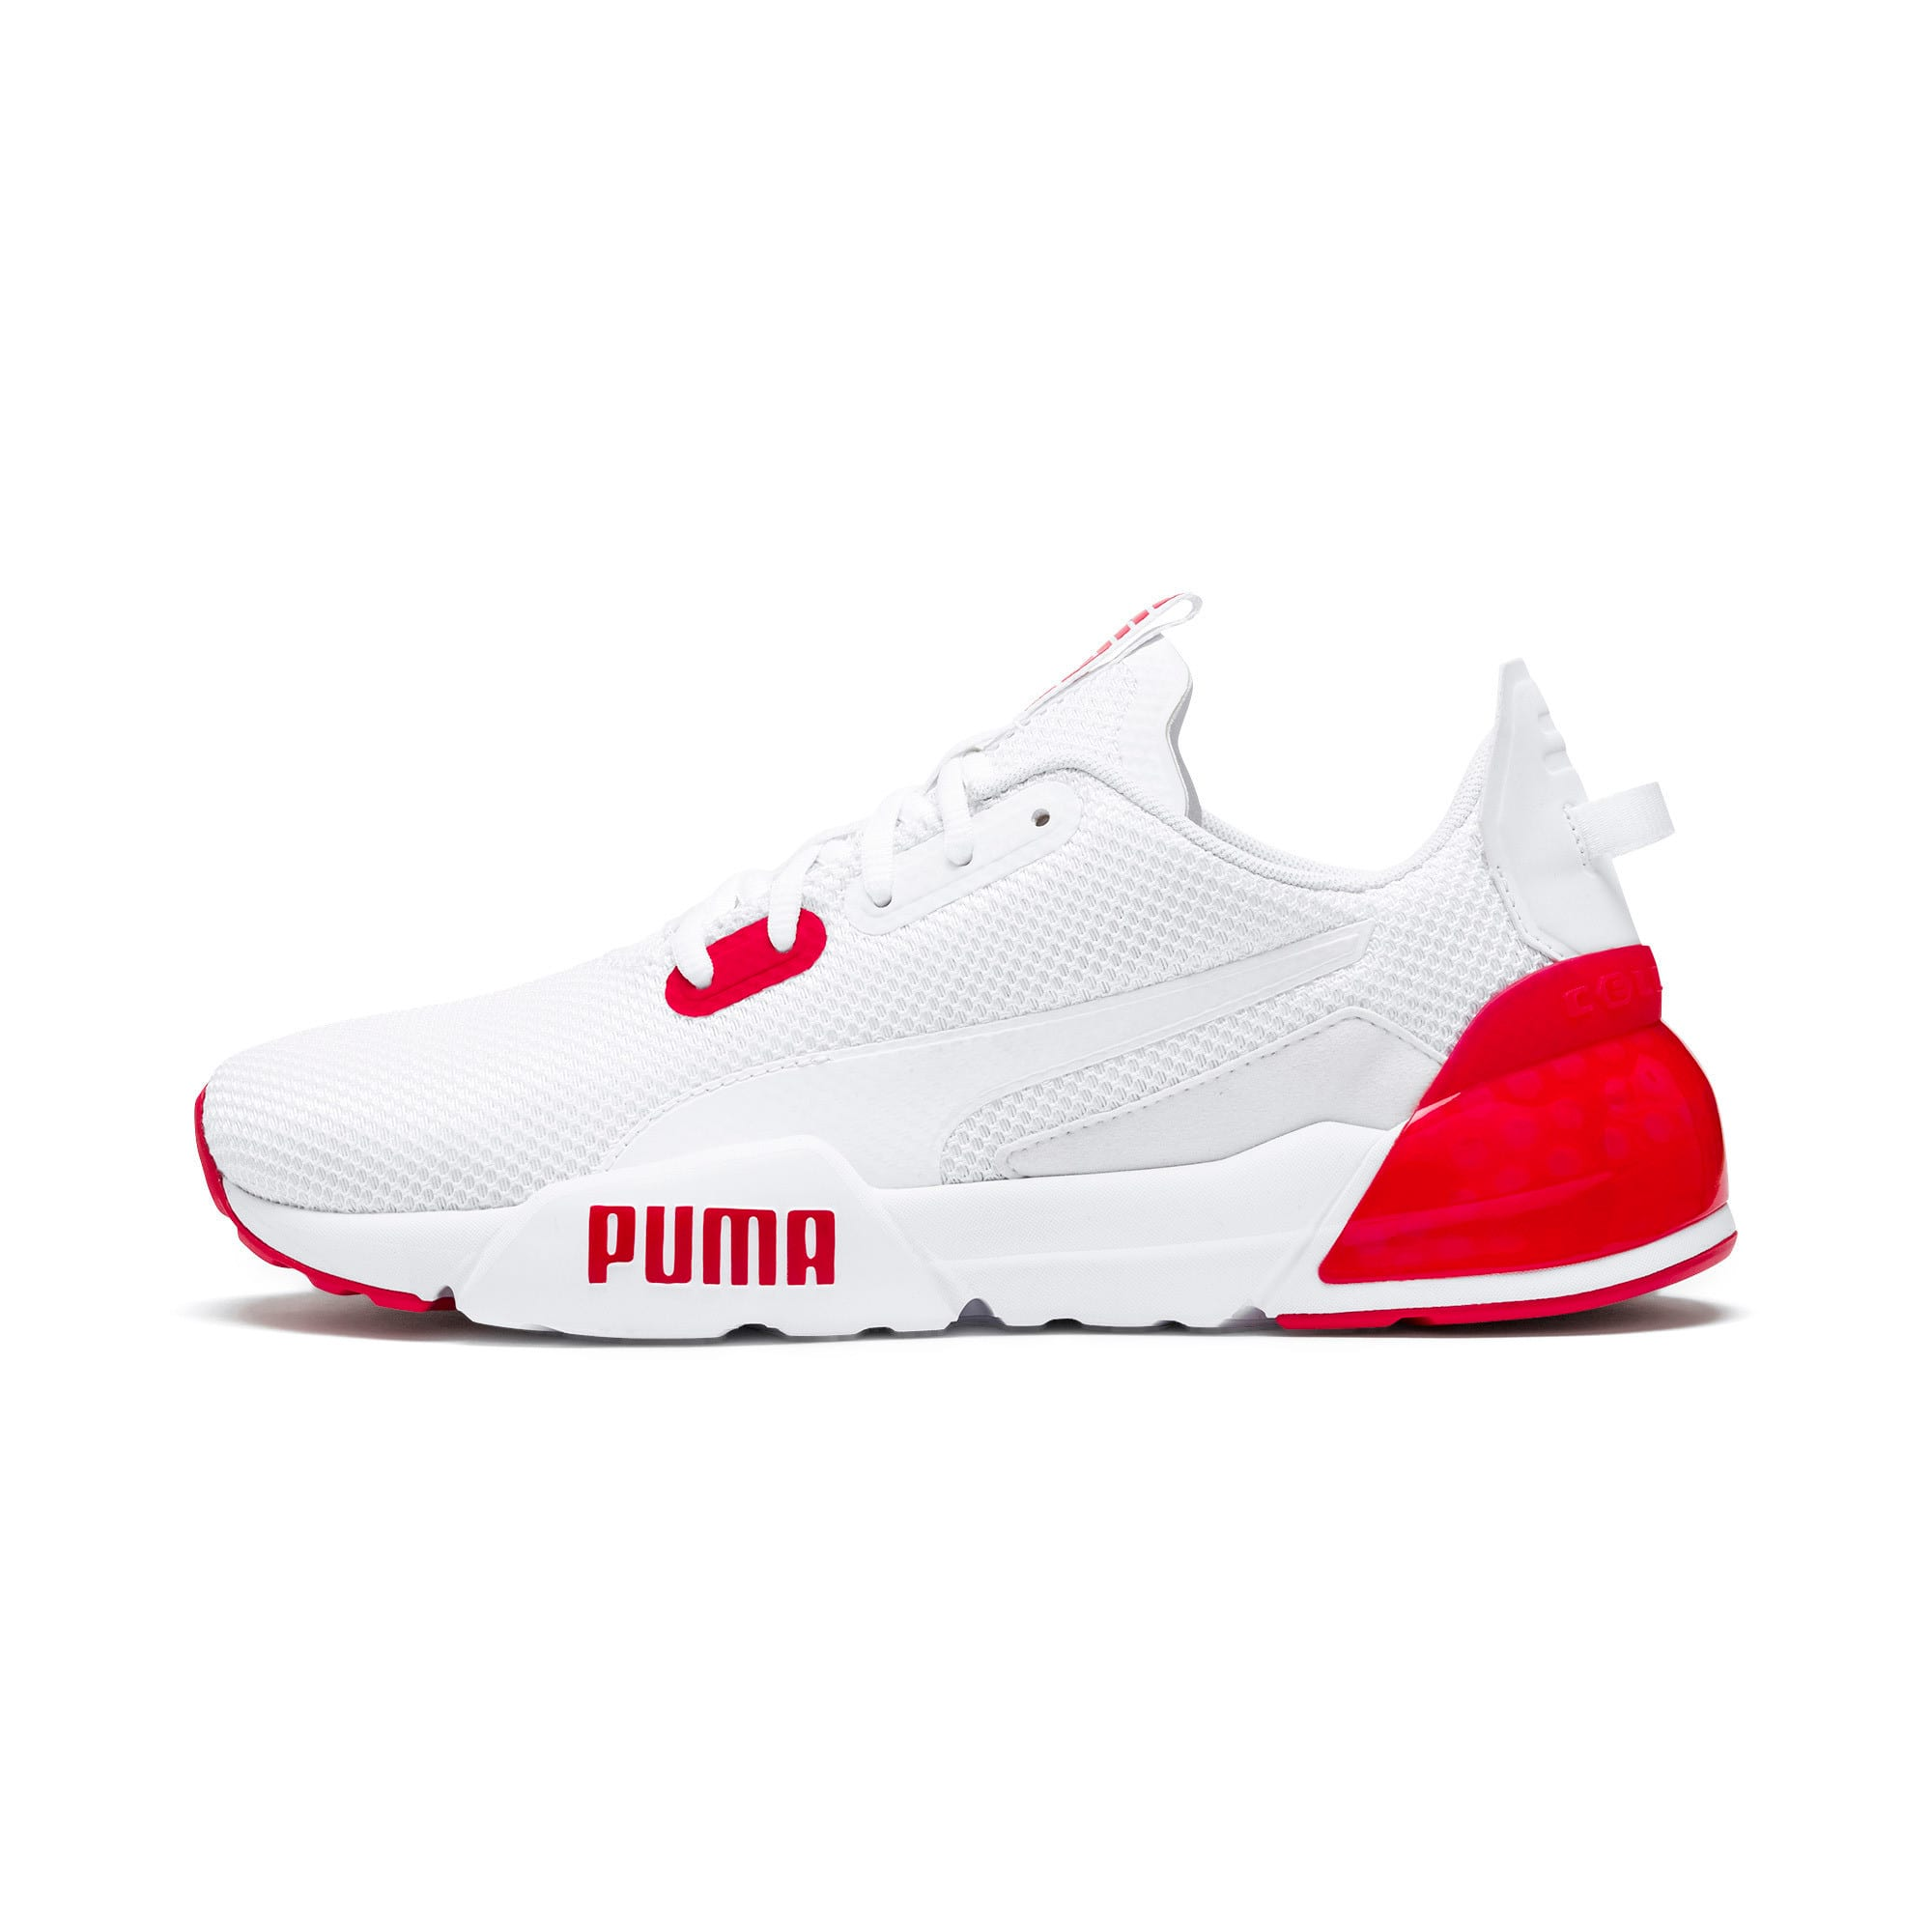 Thumbnail 1 of CELL Phase Men's Training Shoes, Puma White-High Risk Red, medium